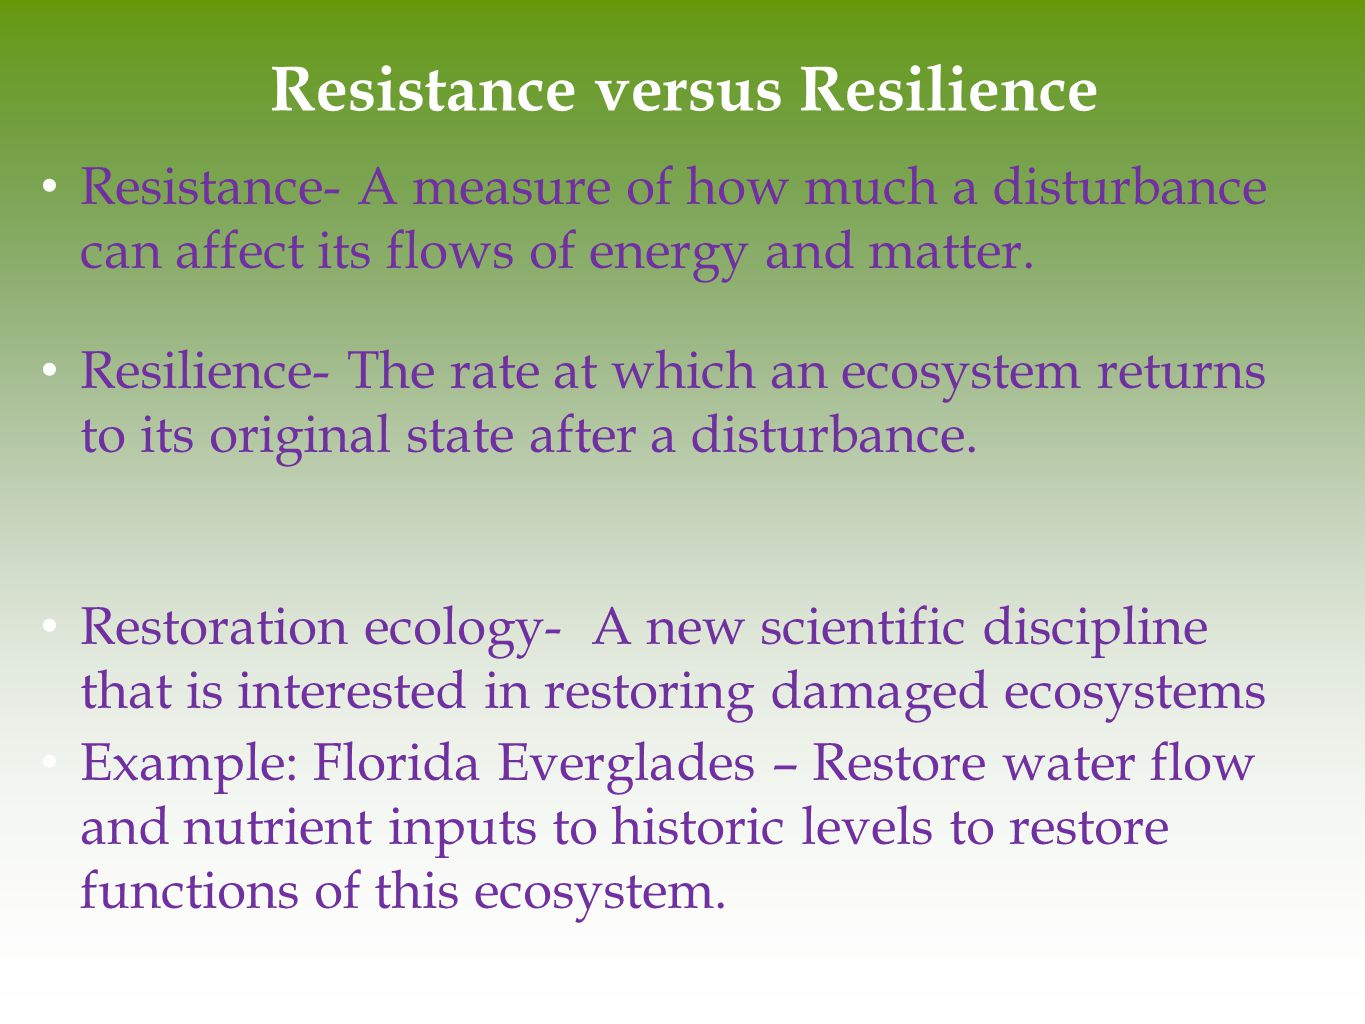 Resistance versus Resilience Resistance- A measure of how much a disturbance can affect its flows of energy and matter. Resilience- The rate at which